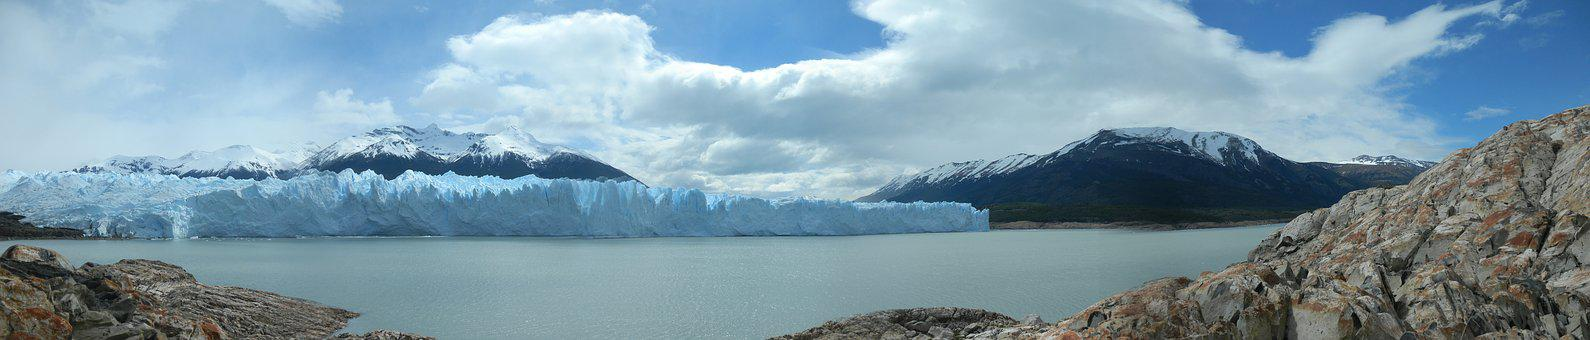 Calafate, Cold, South, Ice, Glacier, Argentina, Nature